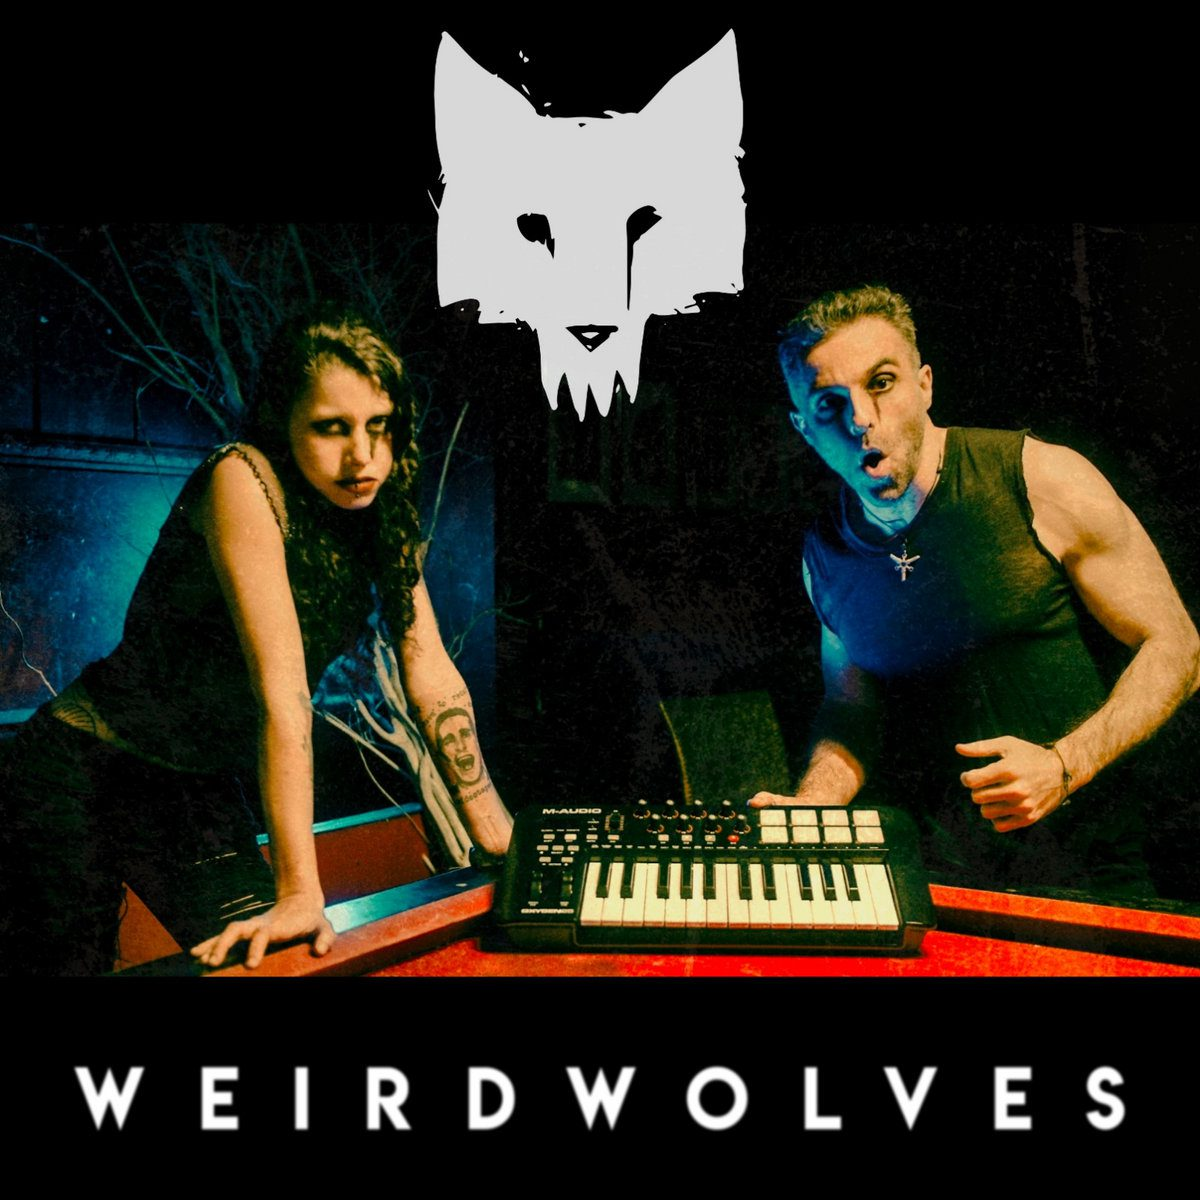 Excellent new single from WeirdWolves feat. Ava Gore, yes the daughter of Martin Gore from Depeche Mode: 'Overdrive'